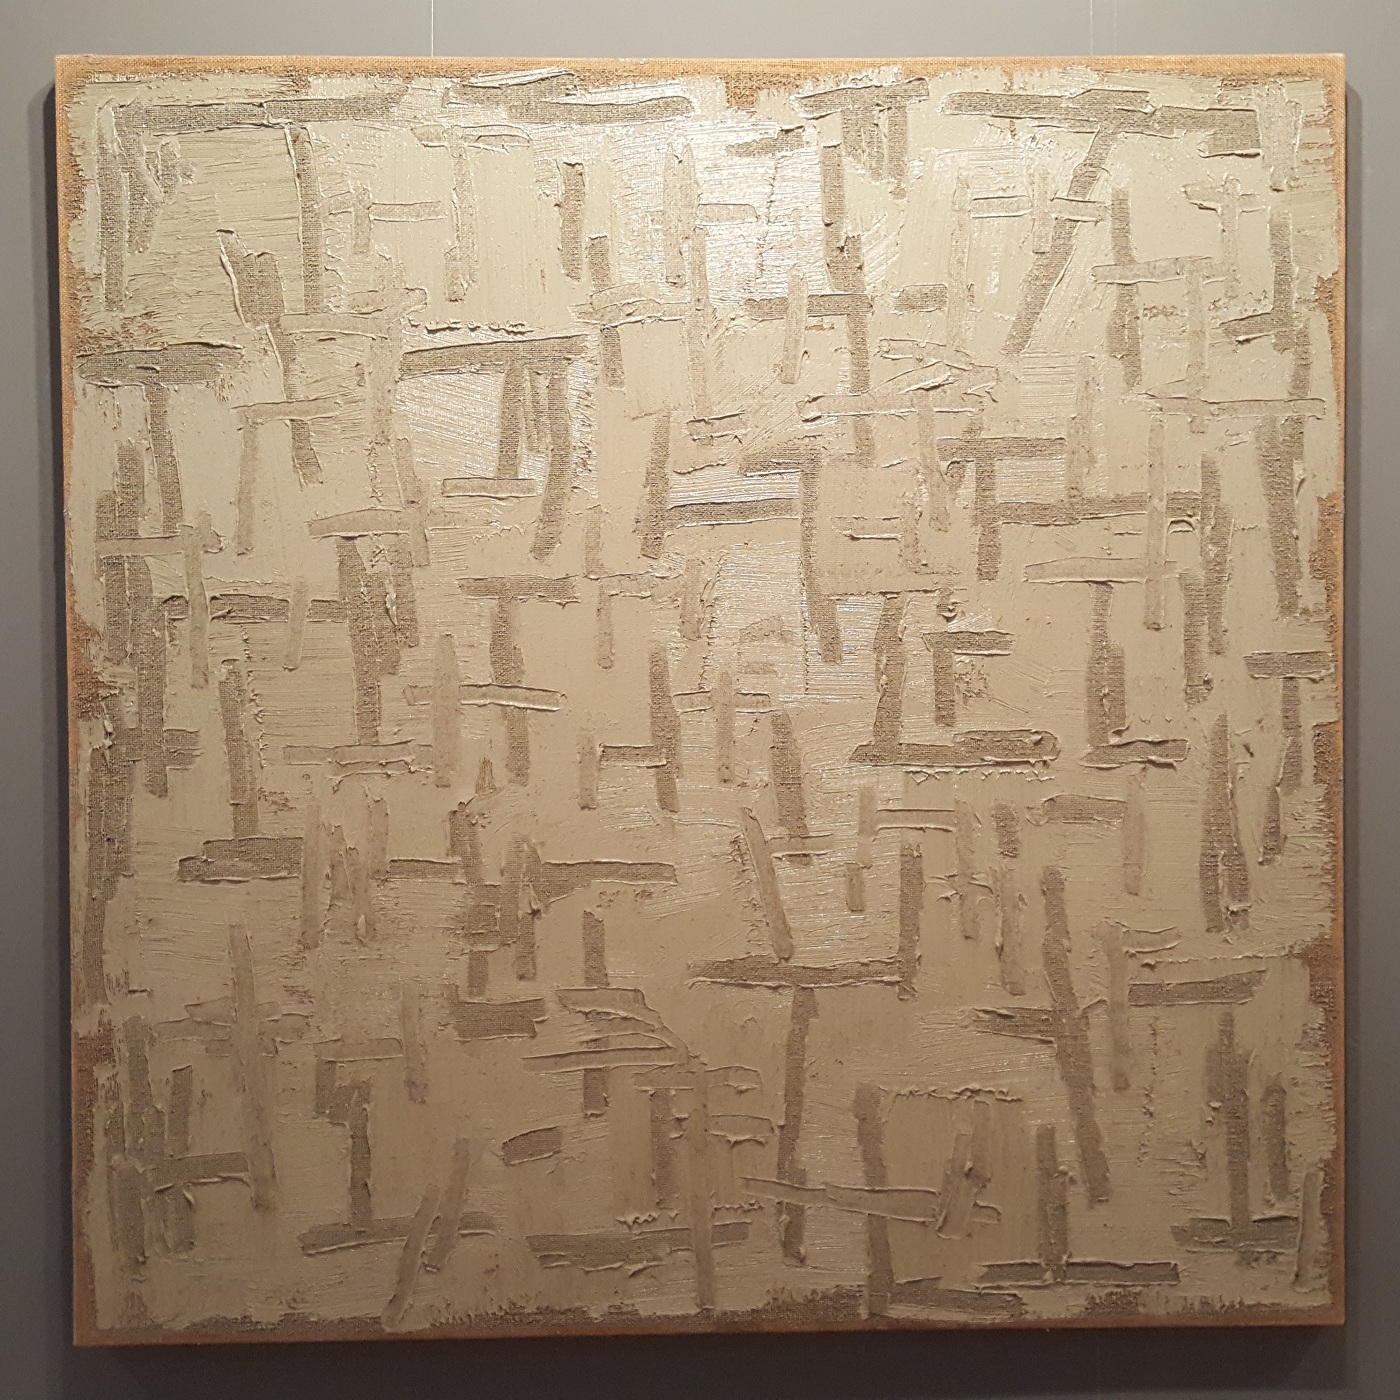 A work by Ha-Chong-Hyun presented by Kukje Gallery and Tina Kim Gallery